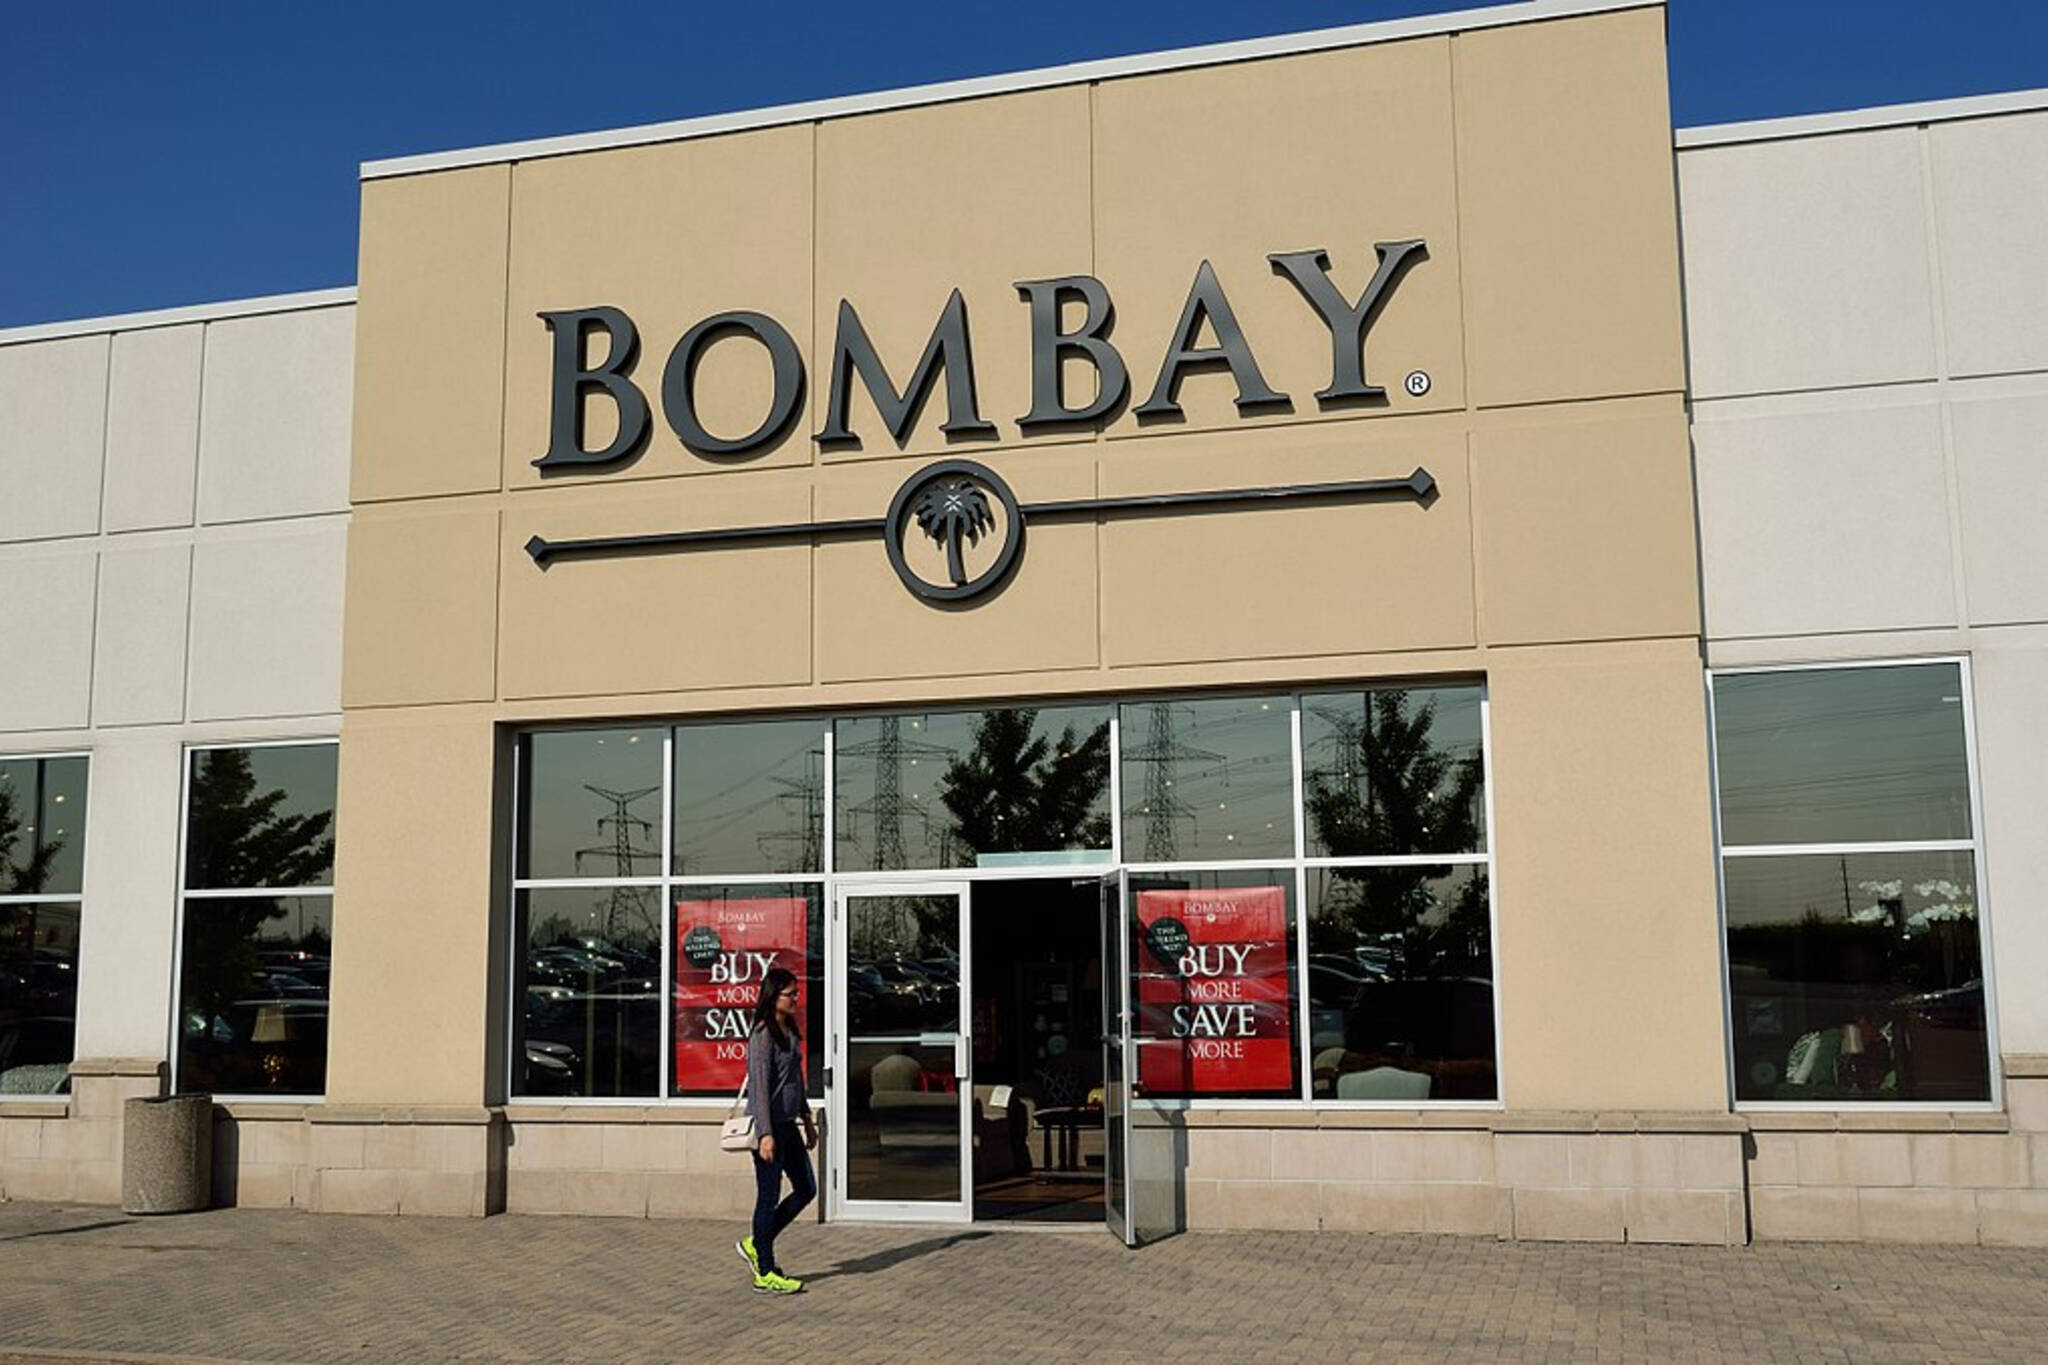 Bombay and bowring stores to close as company drowns in debt